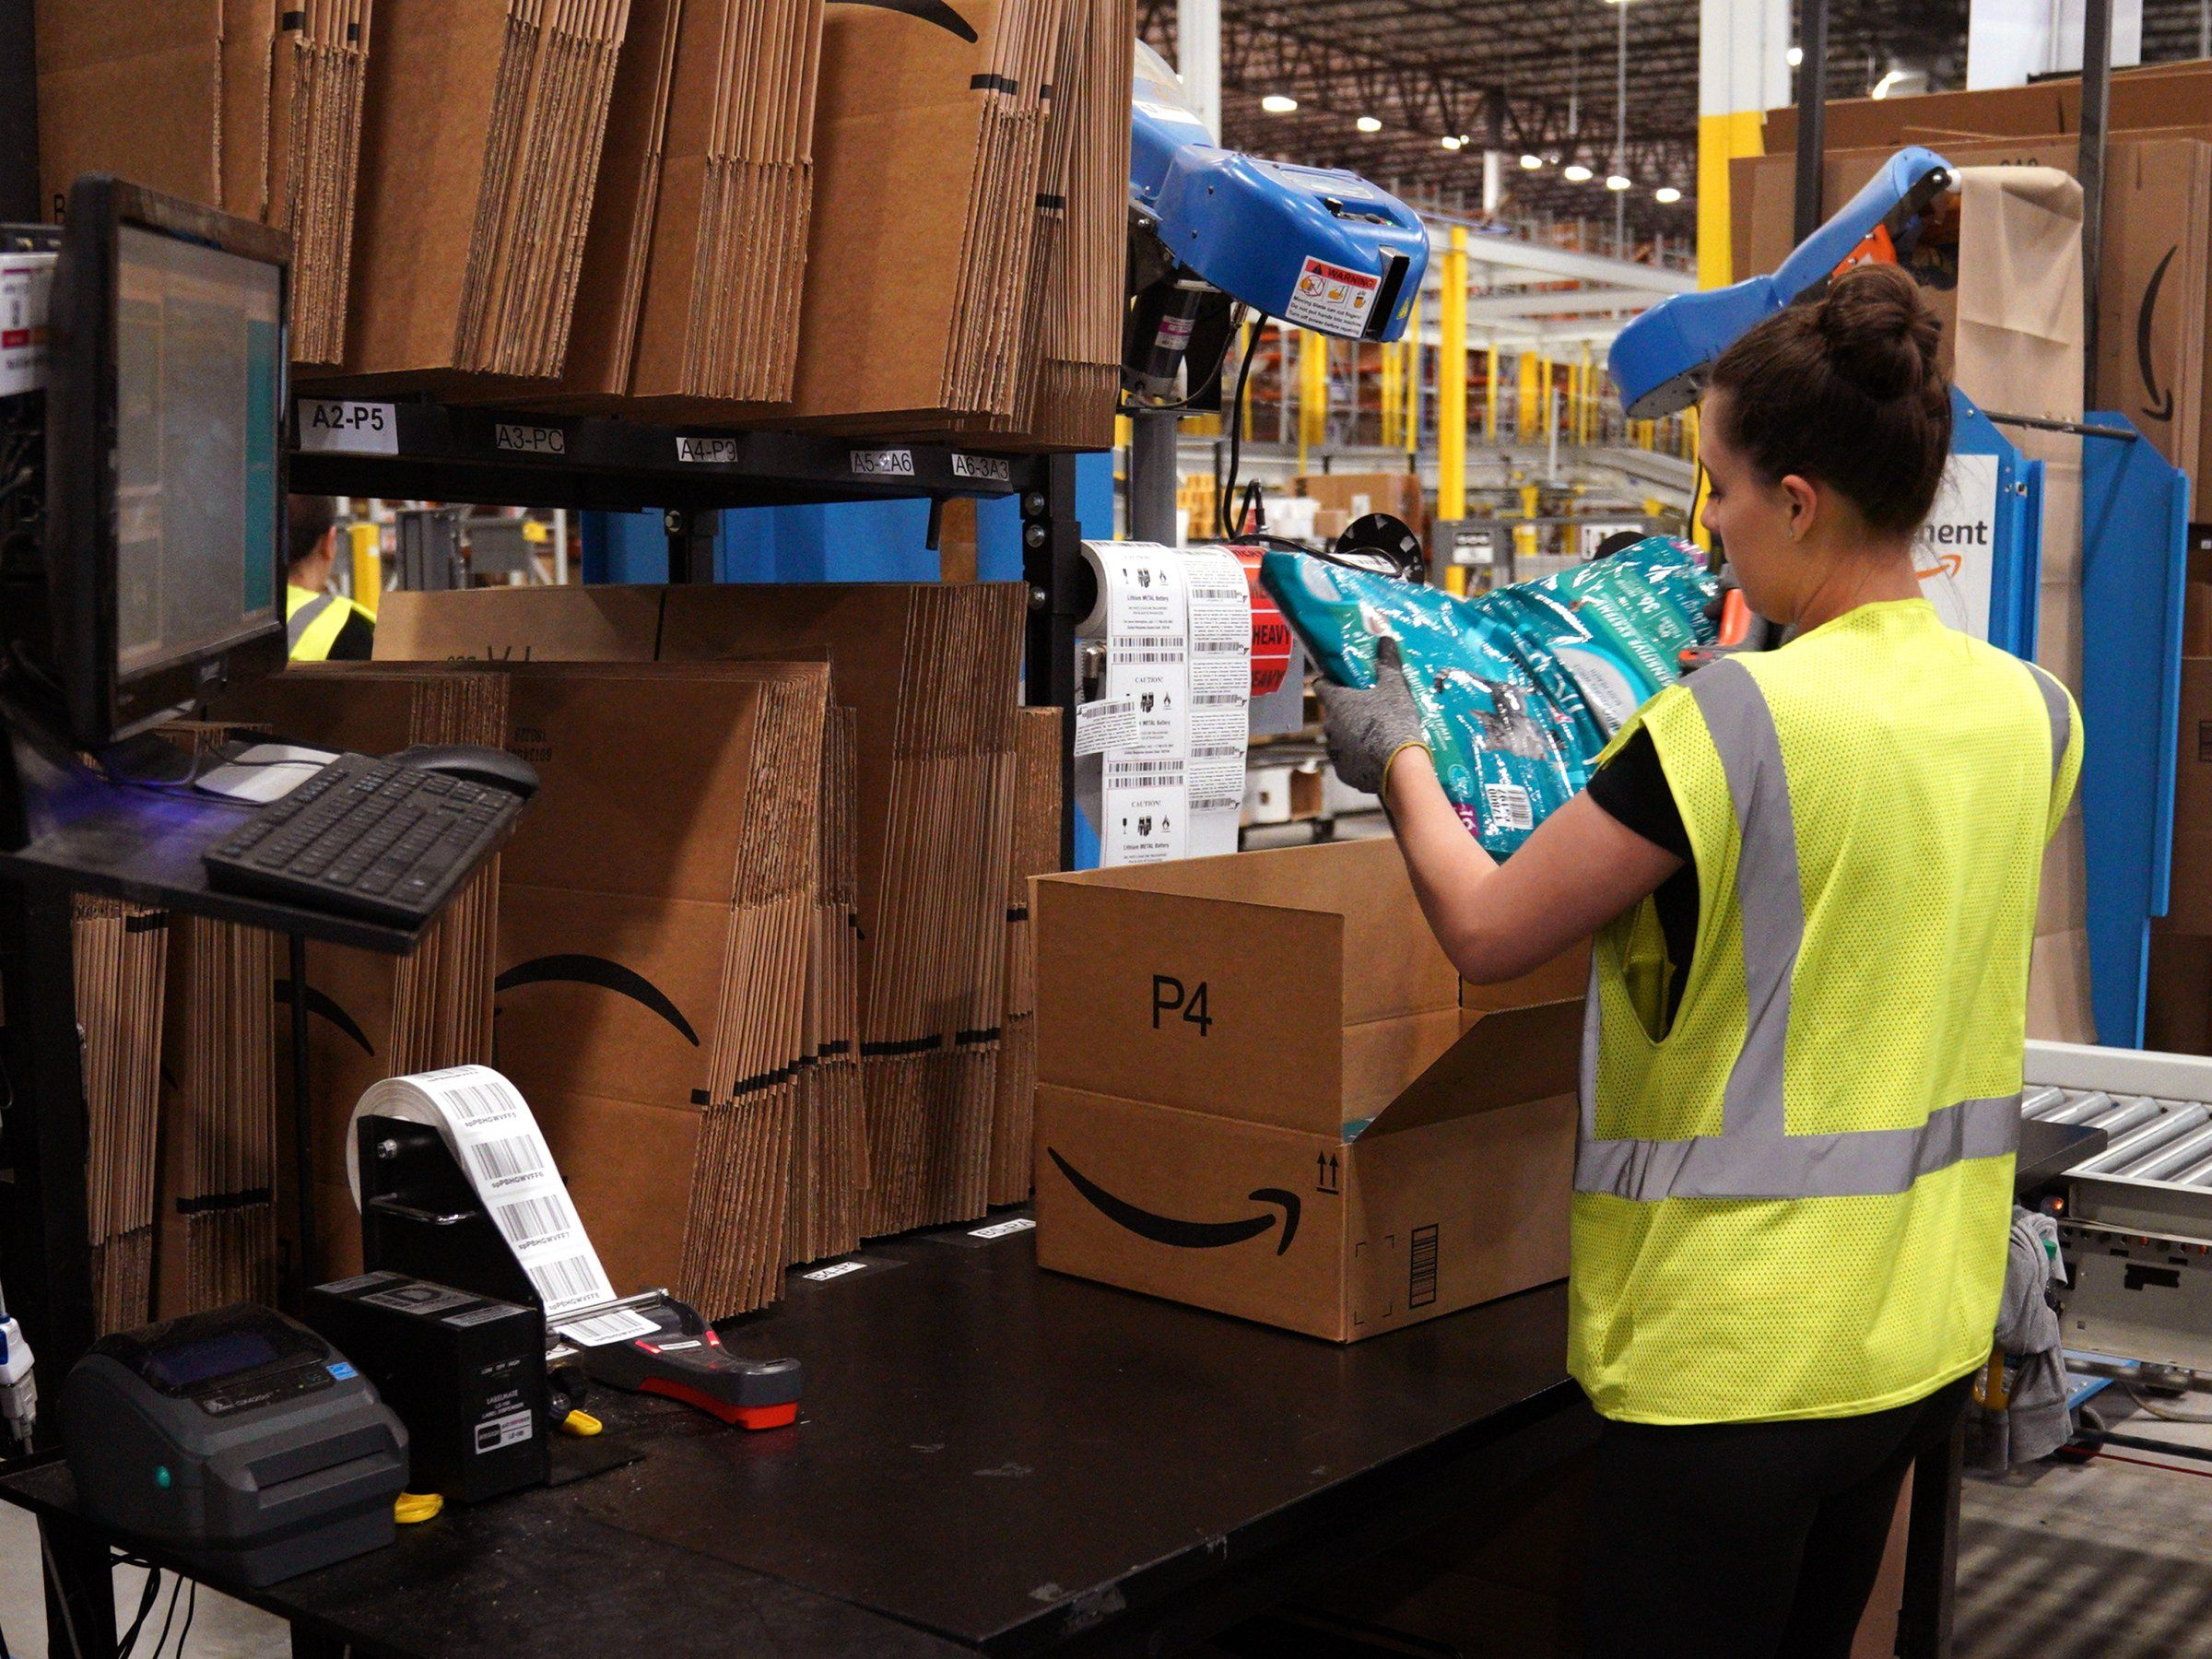 Prime members spend way more on Amazon than other